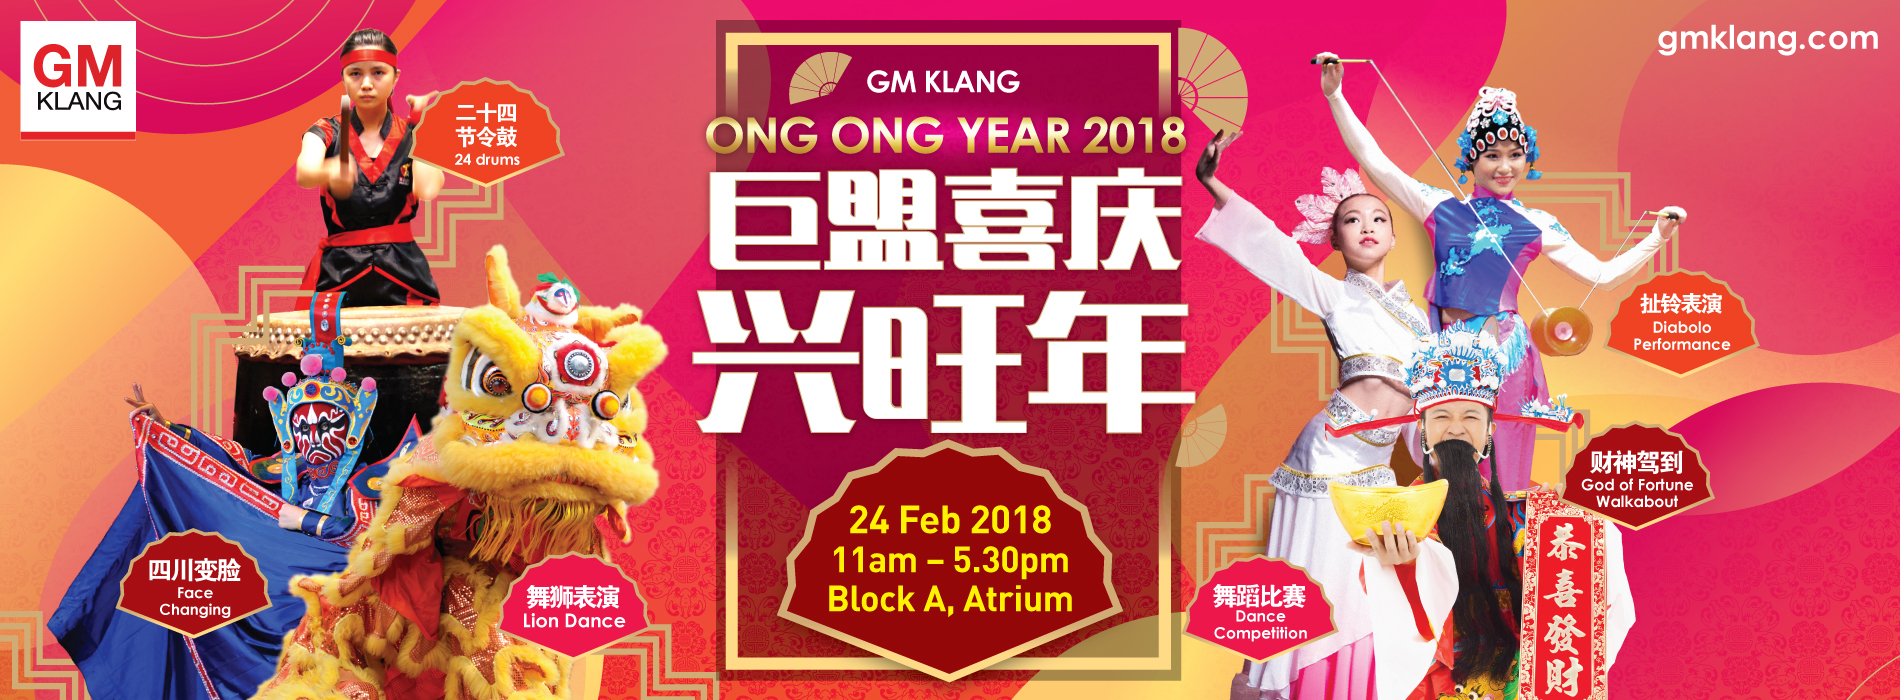 2018 Chinese New Year Event